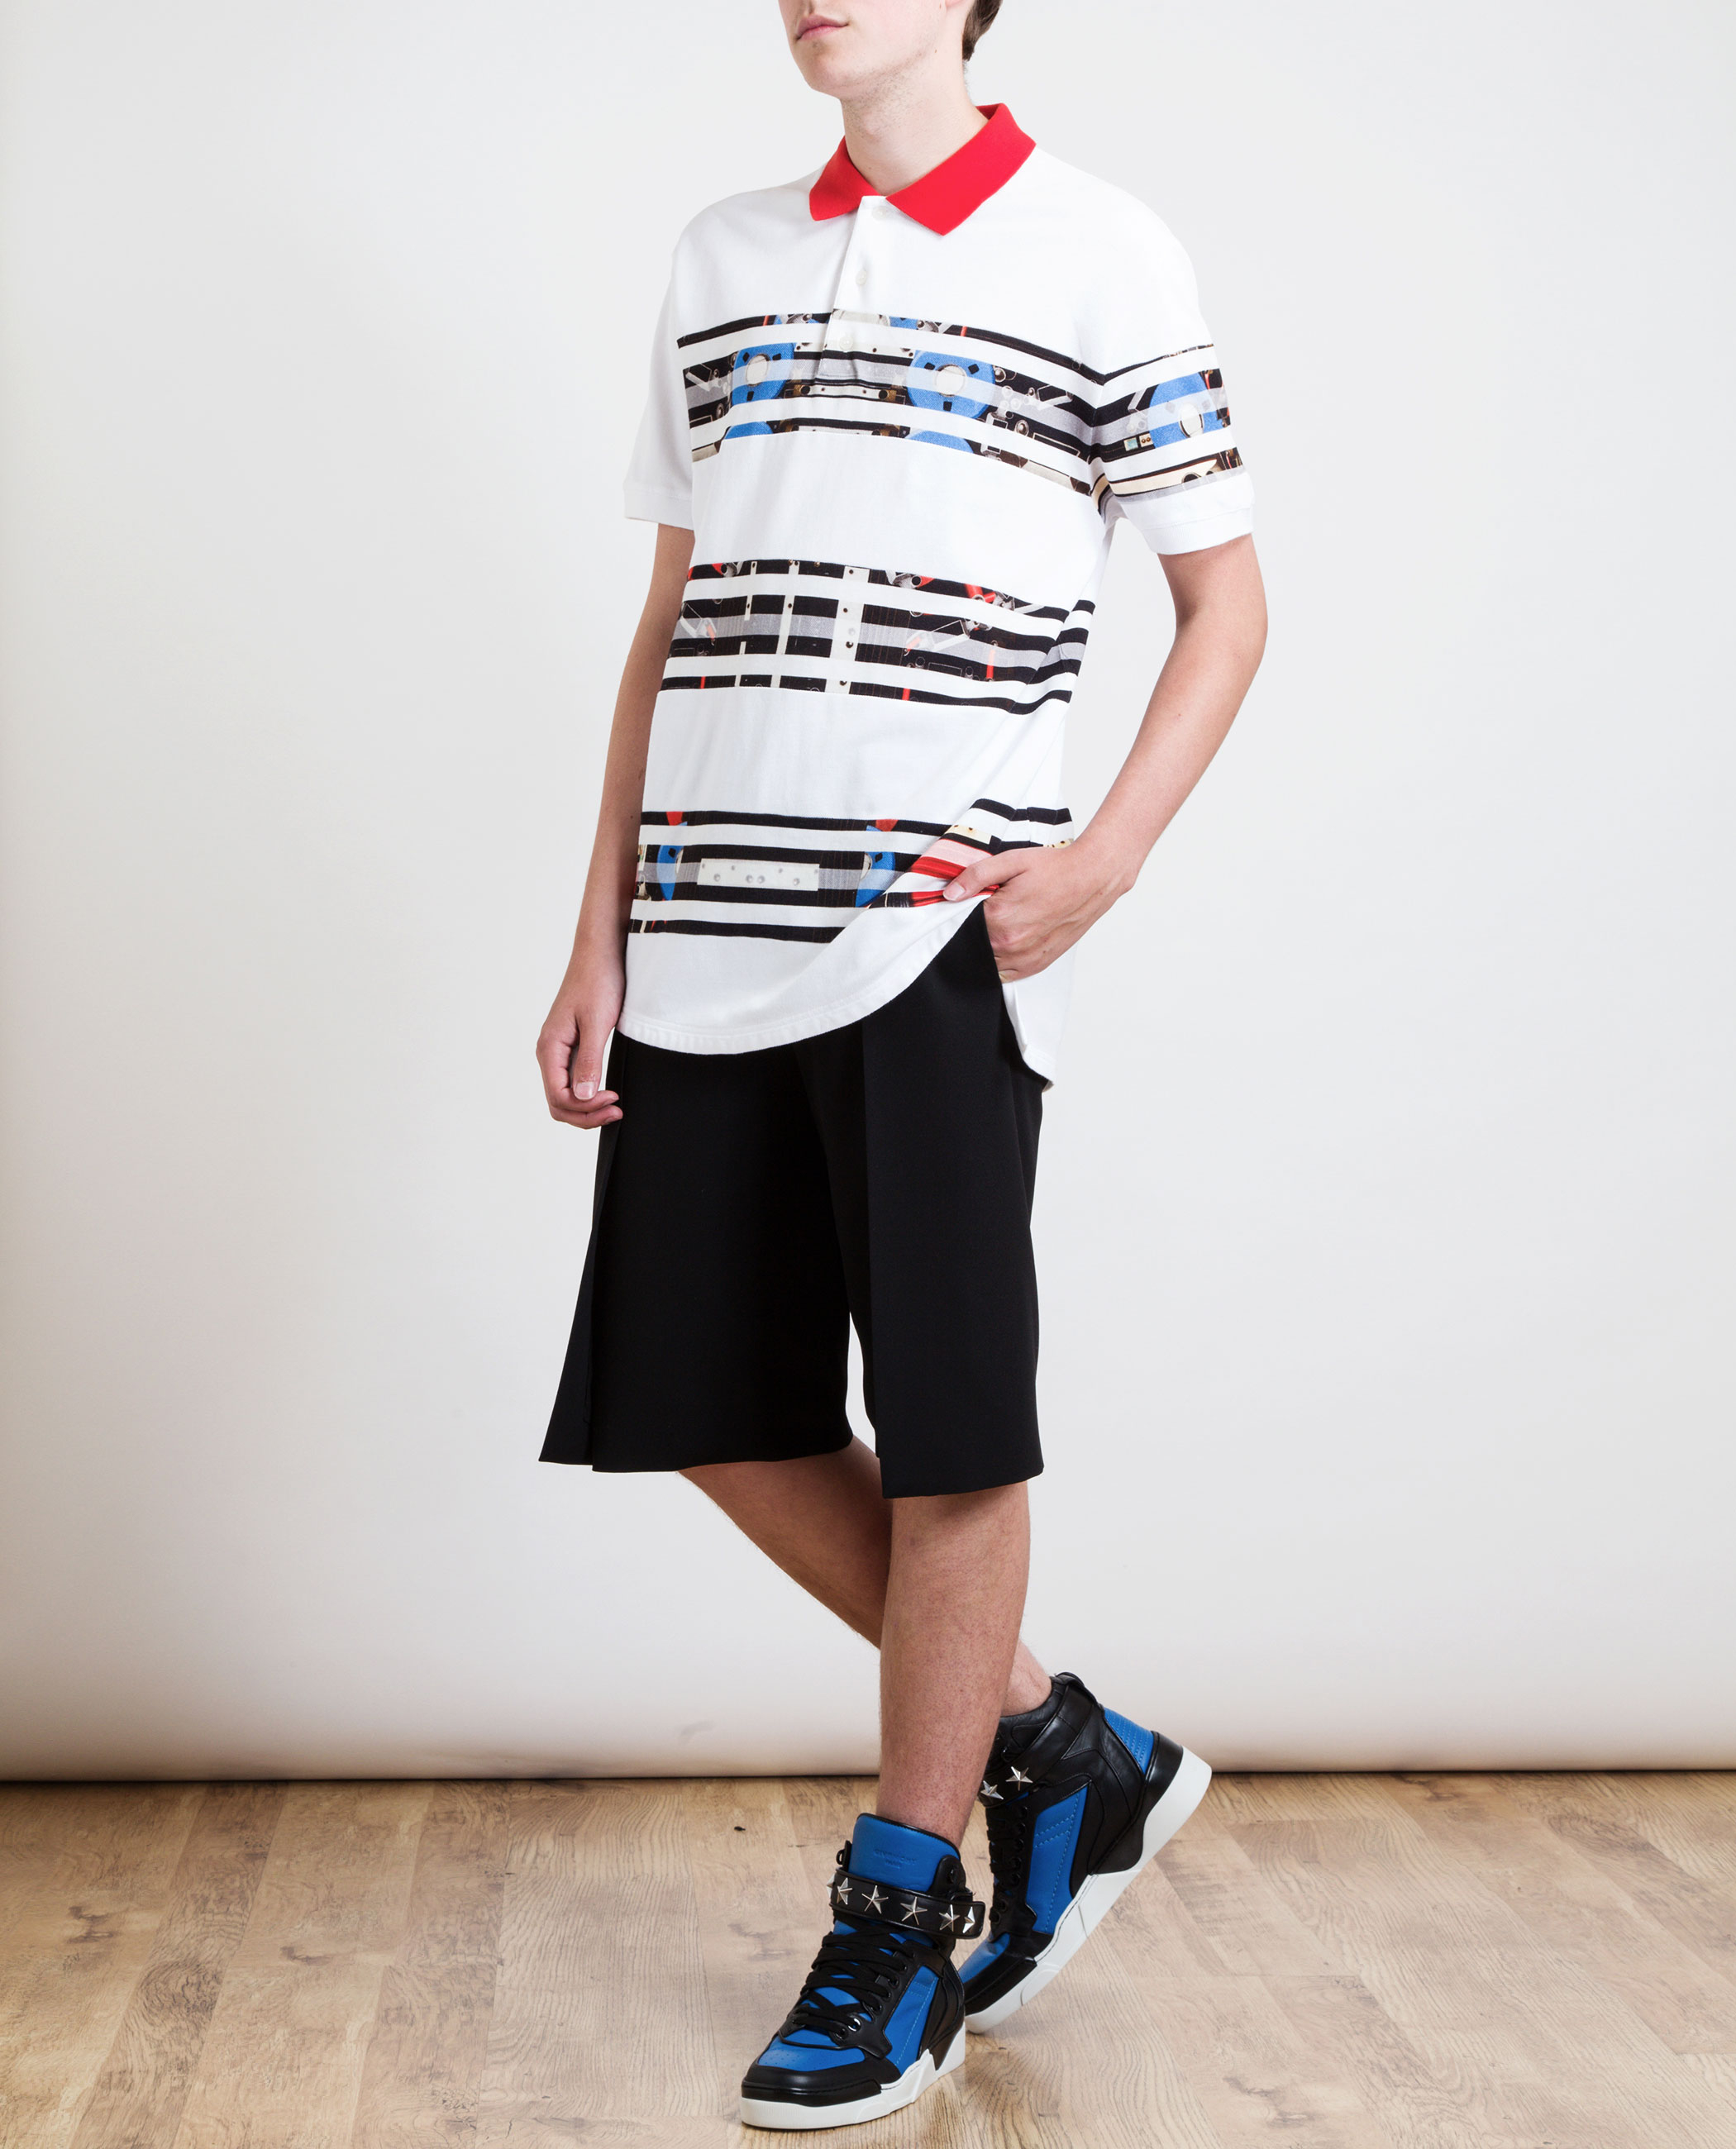 715cc67d28b5 Givenchy Robot Striped Oversized Polo Shirt in White for Men - Lyst